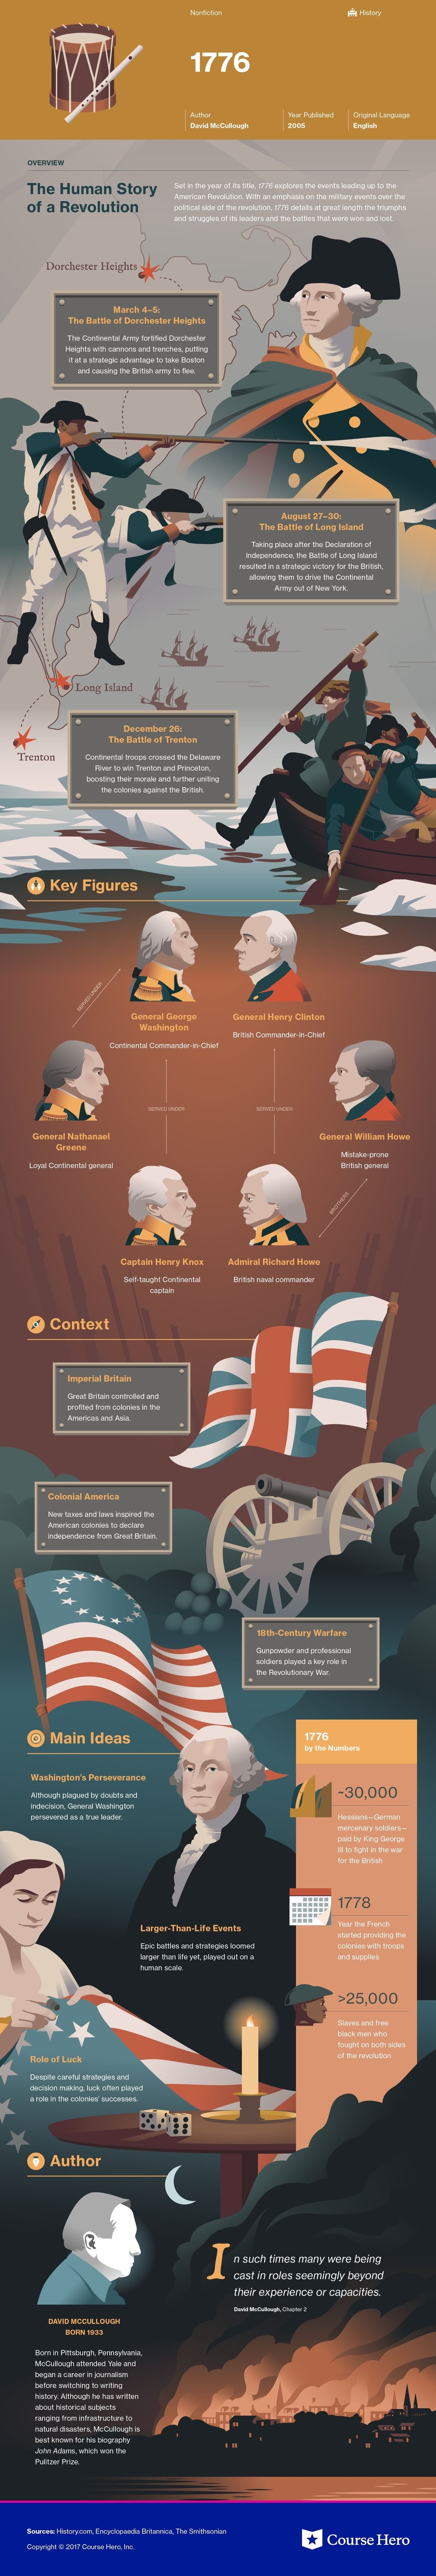 Literature Study Guides1776 #infographic